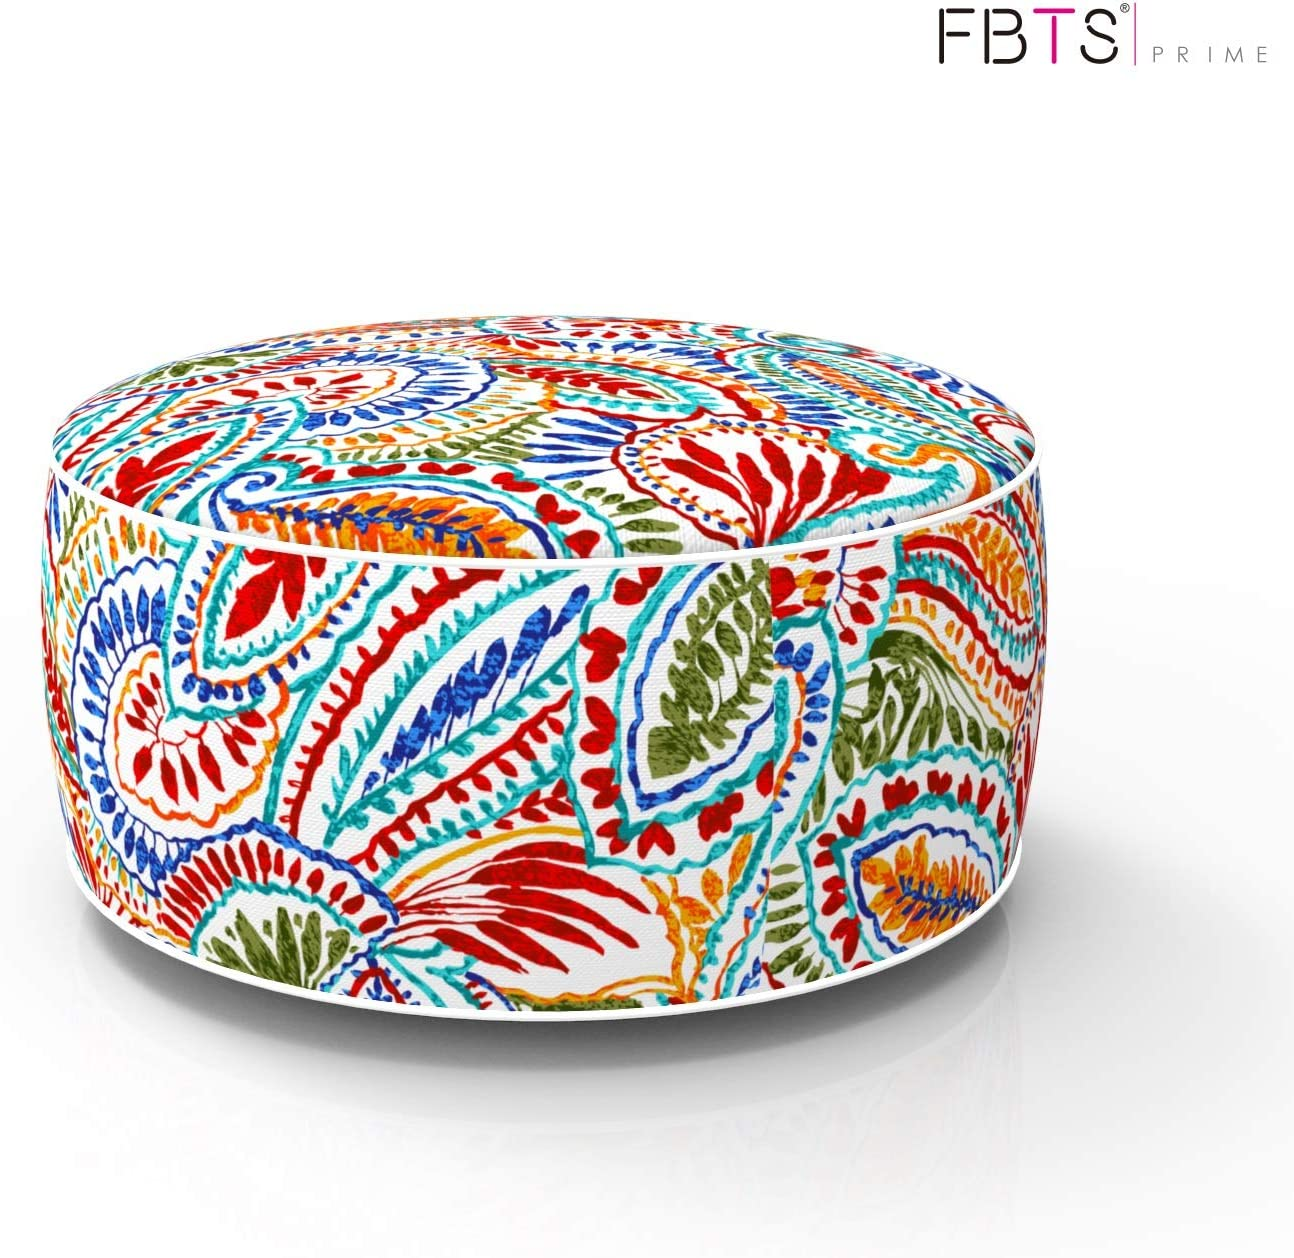 FBTS Prime Outdoor Inflatable Ottoman Red and Orange Paisley Round 21x9 Inch Patio Foot Stools and Ottomans Portable Travel Footstool Used for Outdoor Camping Home Yoga Foot Rest